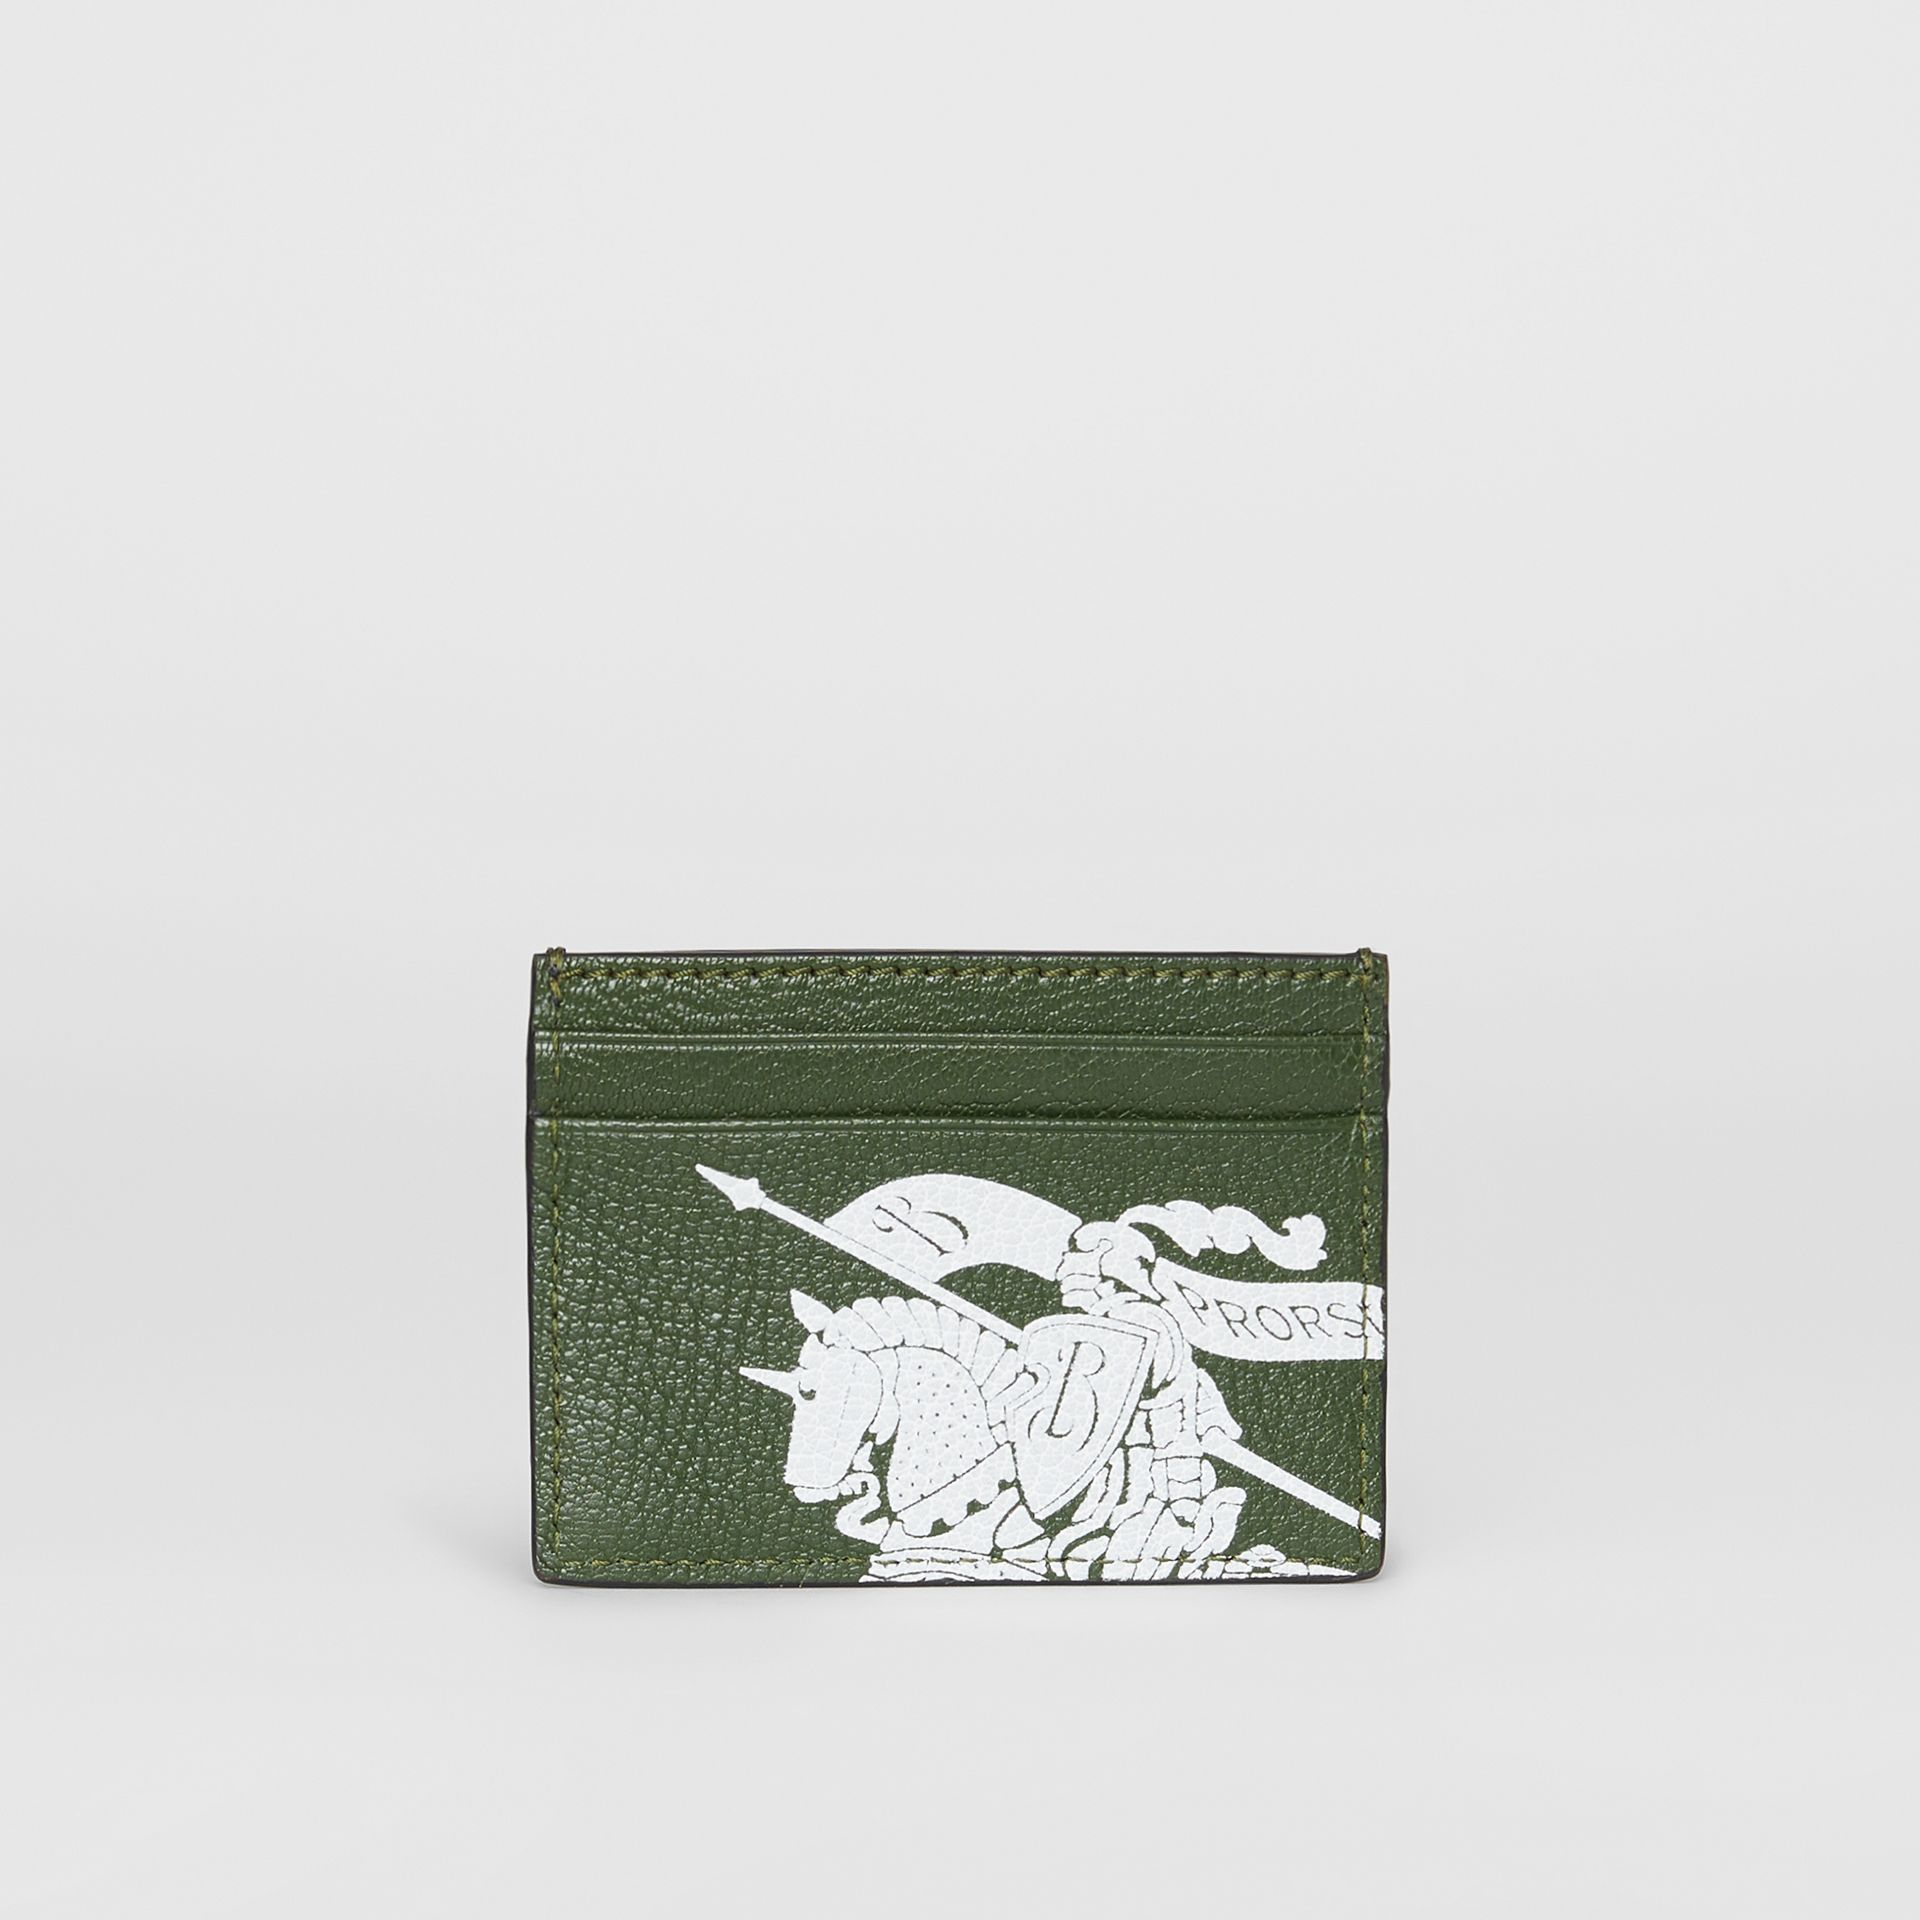 Logo Print Leather Card Case in Storm Blue/antique Green - Men | Burberry - gallery image 5